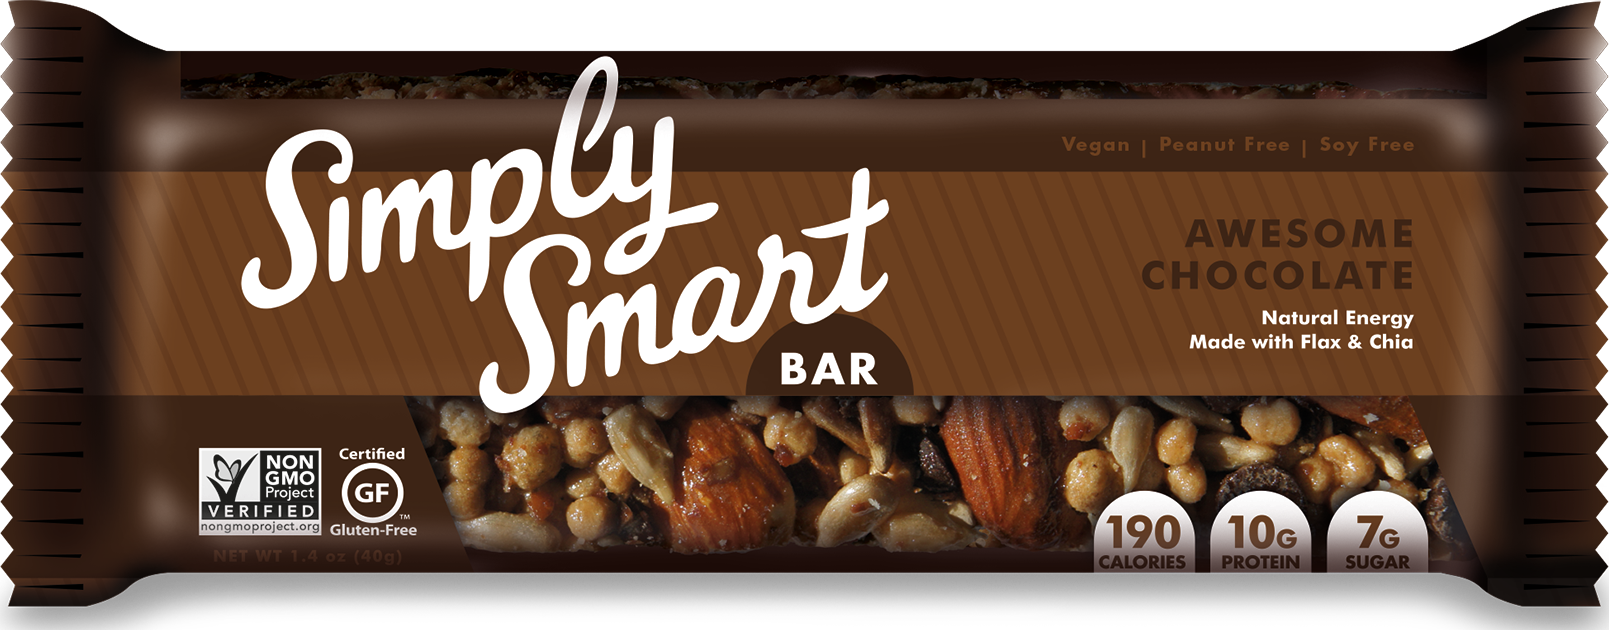 10g vegan protein, gluten free & Non-GMO. A simple healthy energy bar that is low in sugar and truly delicious. Made very simply with high quality whole foods ingredients.